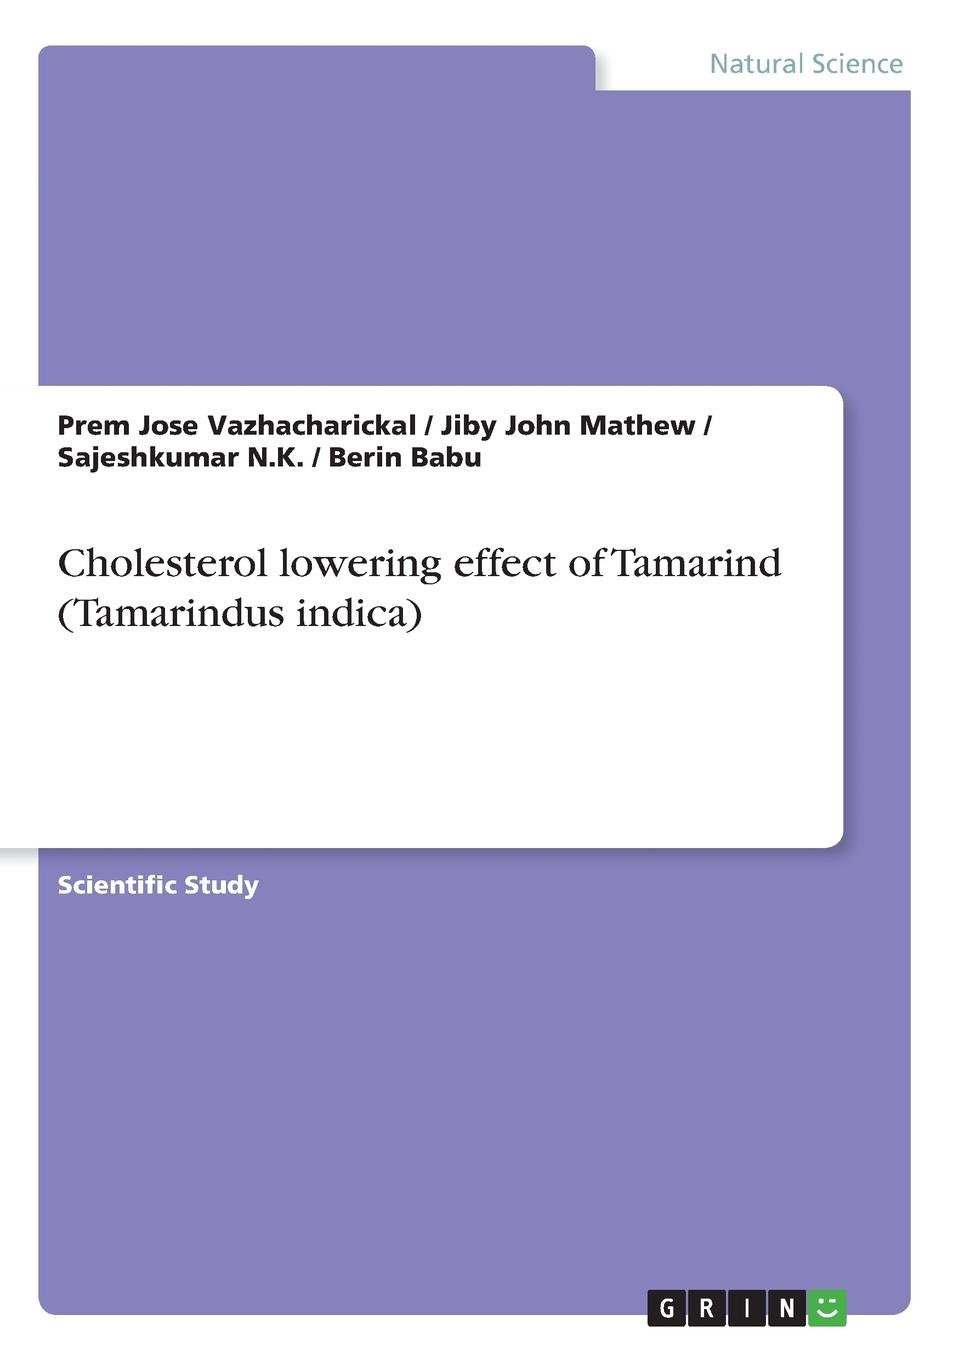 Jiby John Mathew, Sajeshkumar N.K., Prem Jose Vazhacharickal Cholesterol lowering effect of Tamarind (Tamarindus indica) jiby john mathew prem jose vazhacharickal sajeshkumar n k the honey apple and its phytochemical analysis